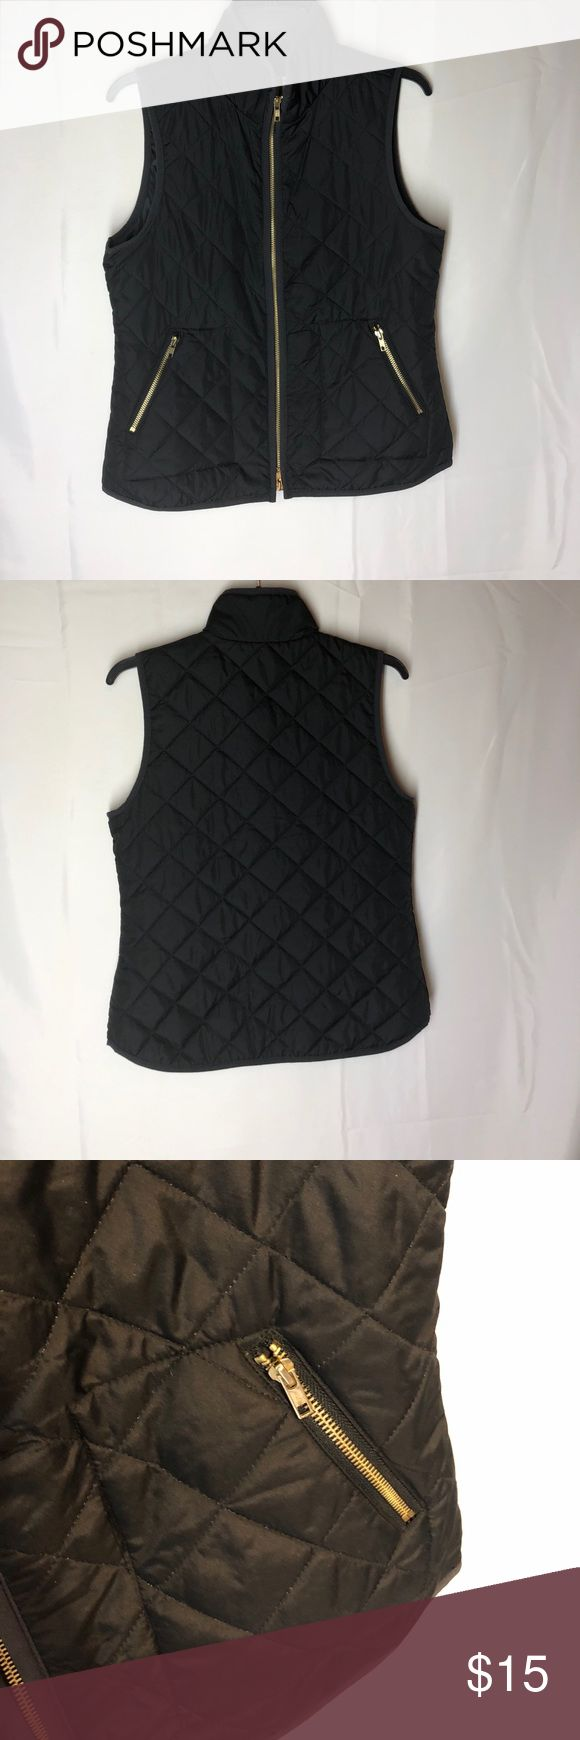 Old Navy vest Quilted pattern open pockets  100% polyester Old Navy Jackets & Coats Vests